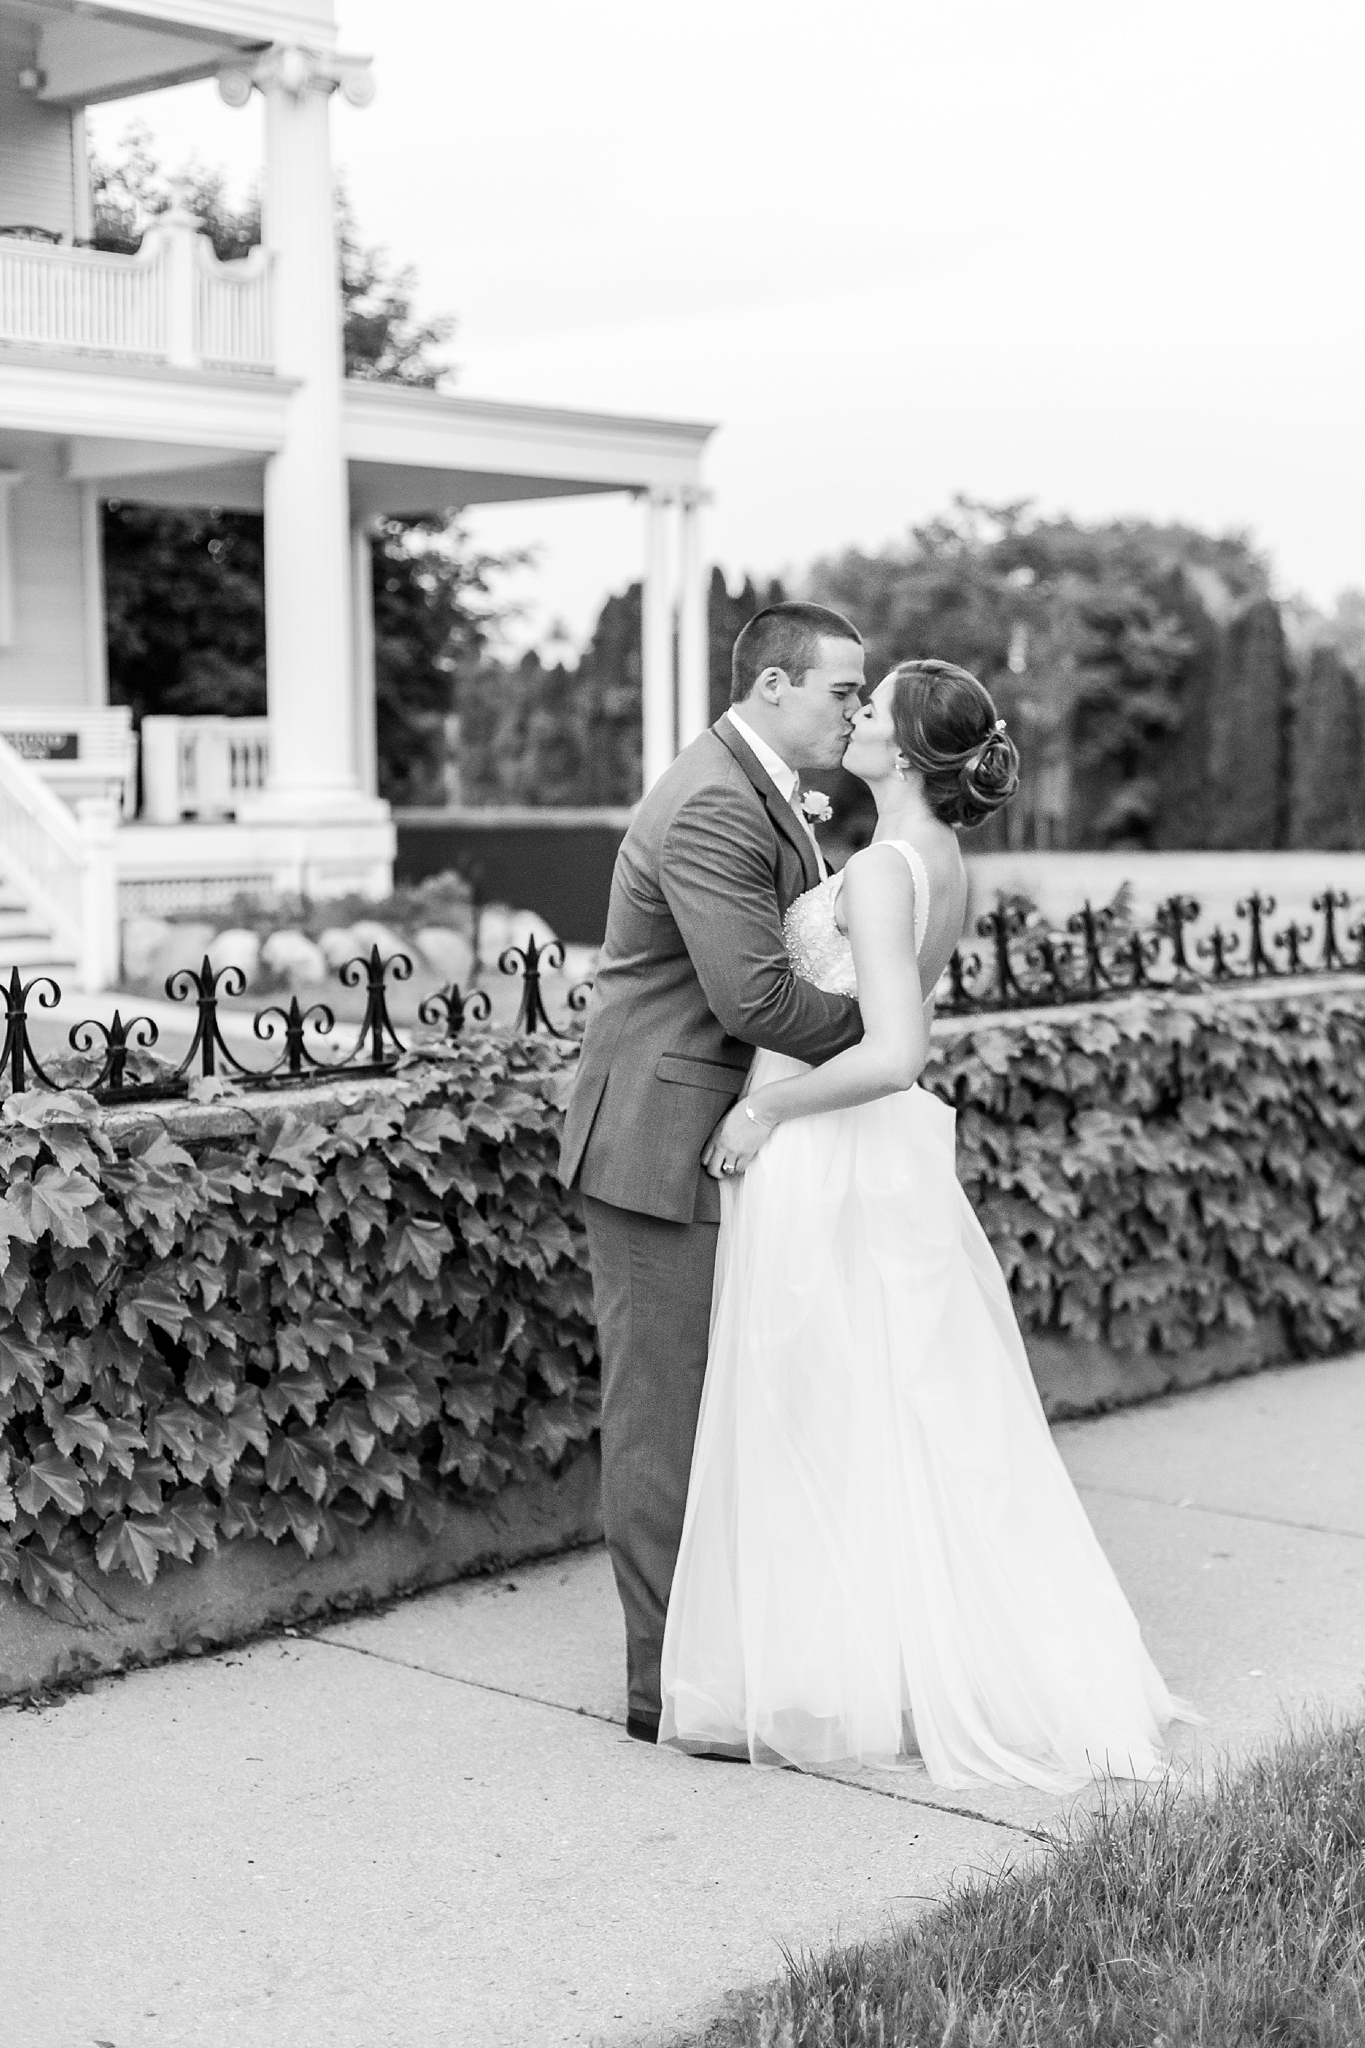 classic-intimate-fun-wedding-photos-at-the-meeting-house-grand-ballroom-in-plymouth-michigan-by-courtney-carolyn-photography_0102.jpg